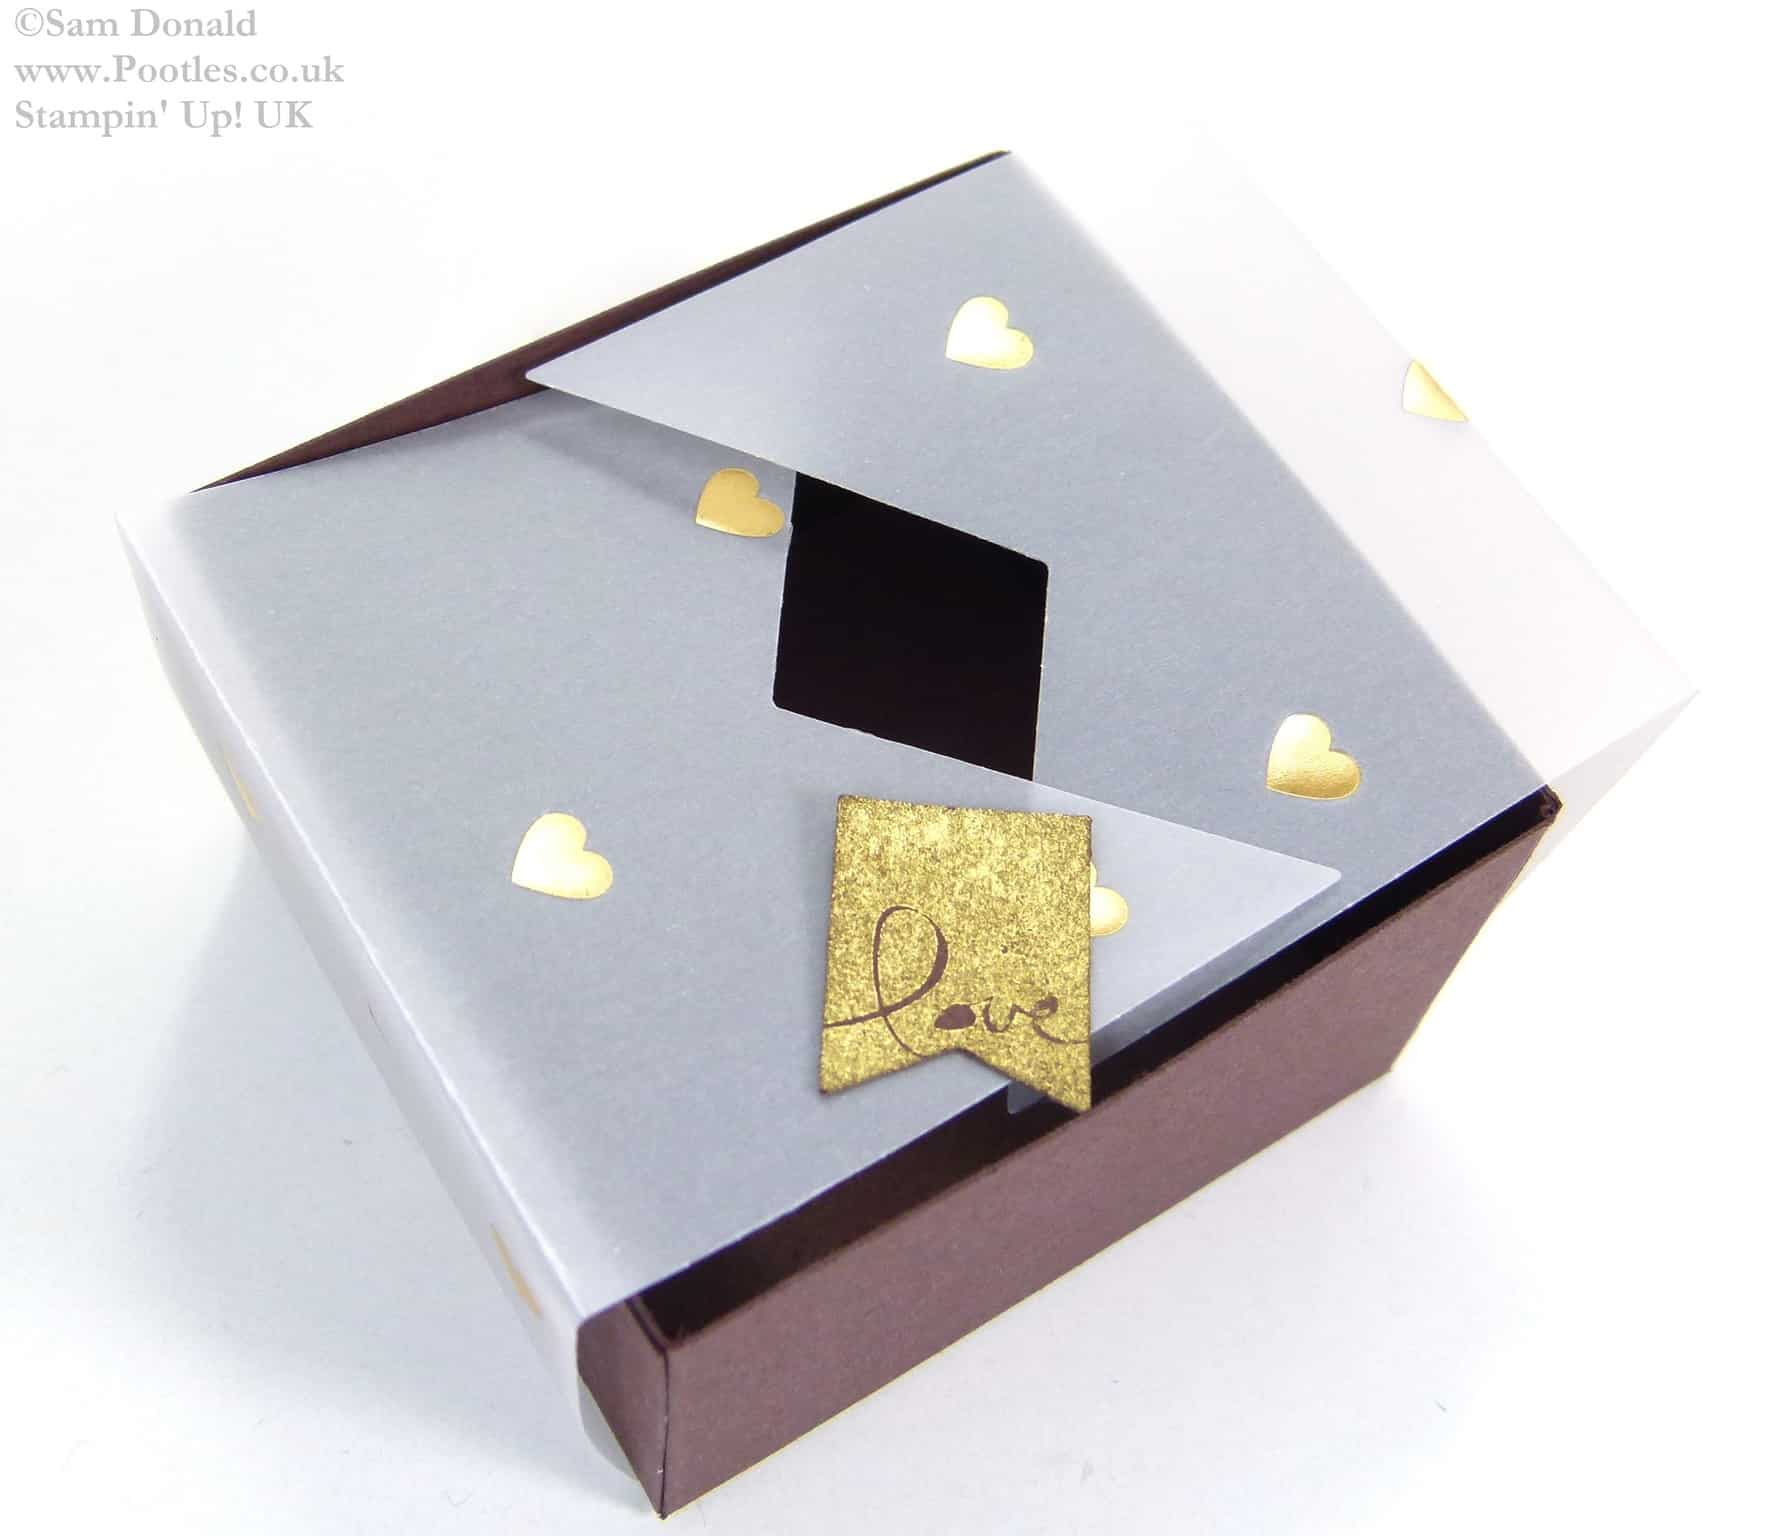 POOTLES Stampin Up UK SPRINGWATCH Folded Vellum Chocolate Truffle Box Tutorial 4